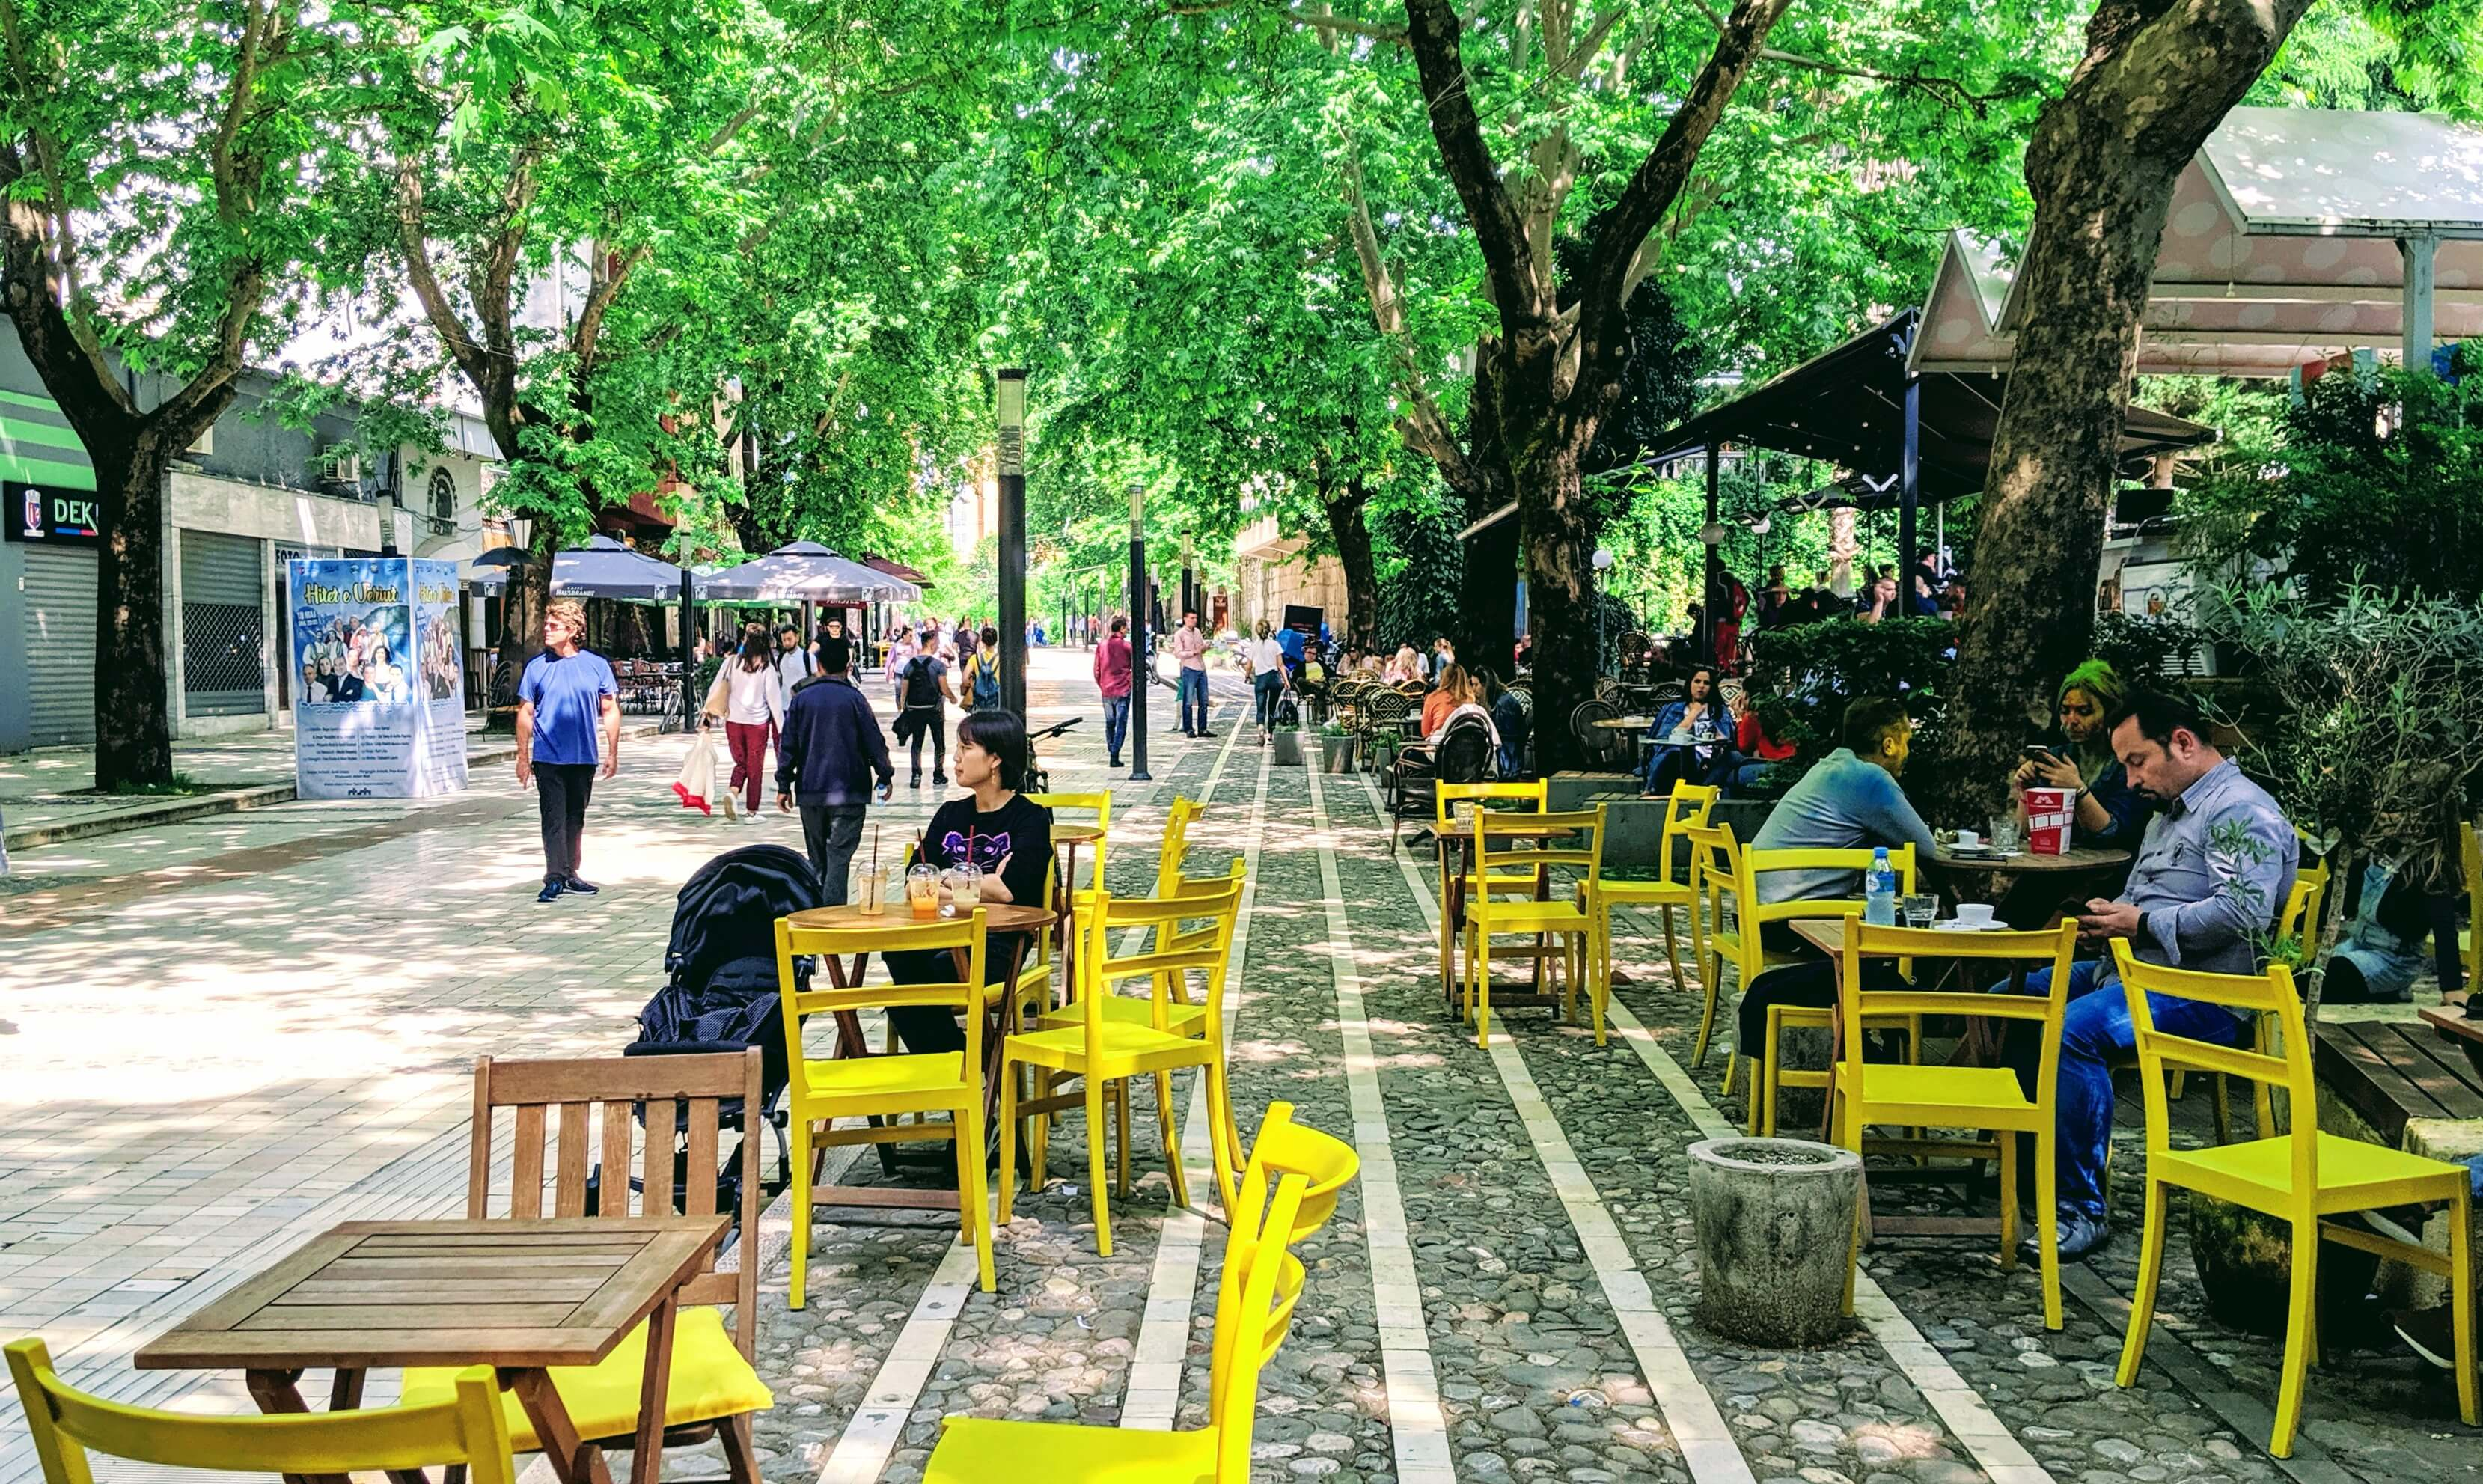 Toptani Street lined with cafes, shops and art galleries.